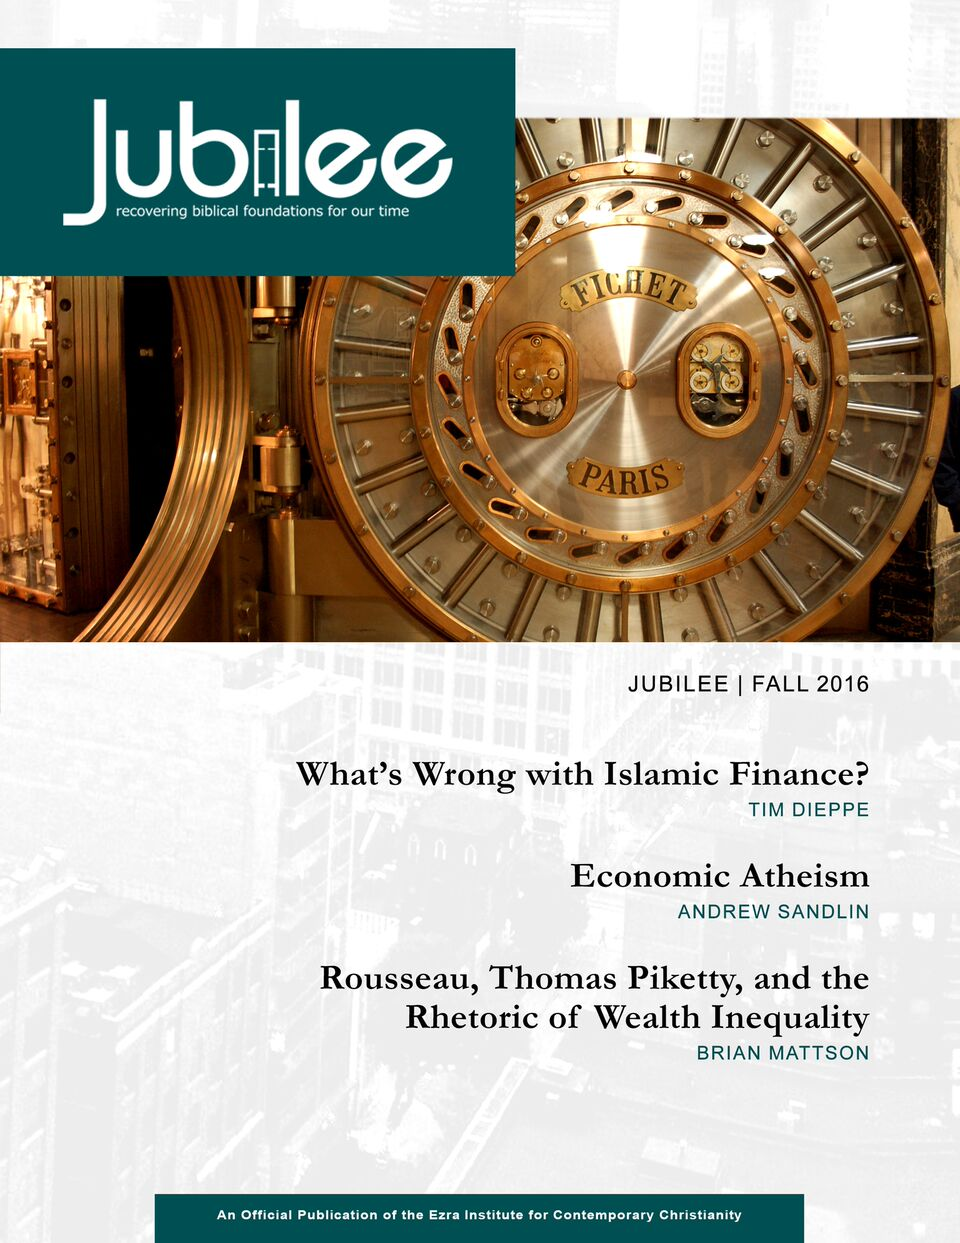 Money and Economics - Fall 2016 - Digital Download / Online Reader